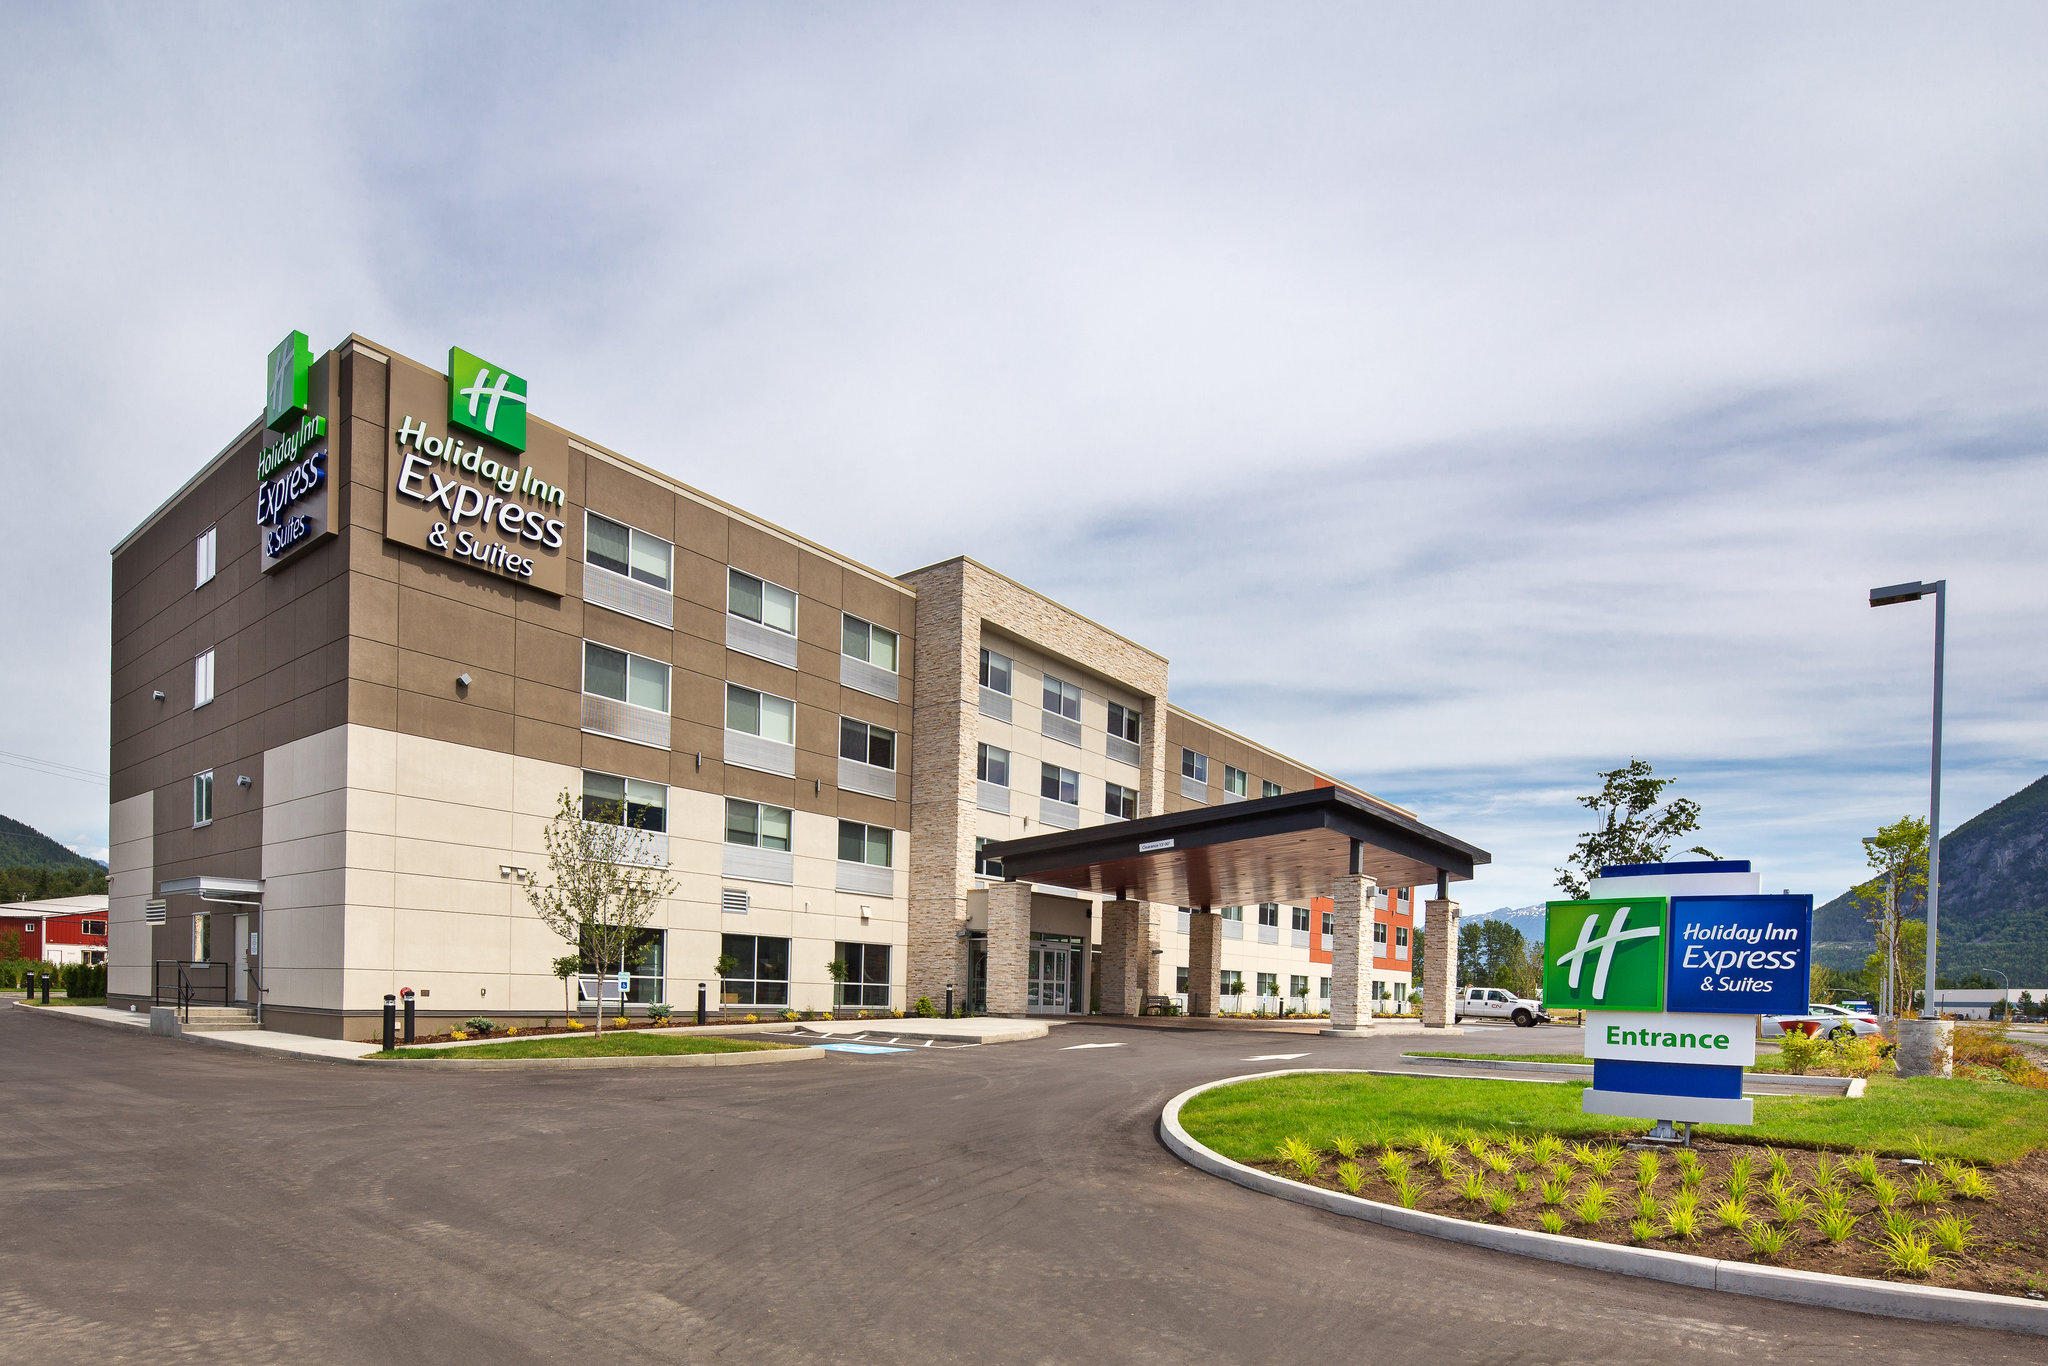 Holiday Inn Express & Suites Terrace Terrace (778)634-3977